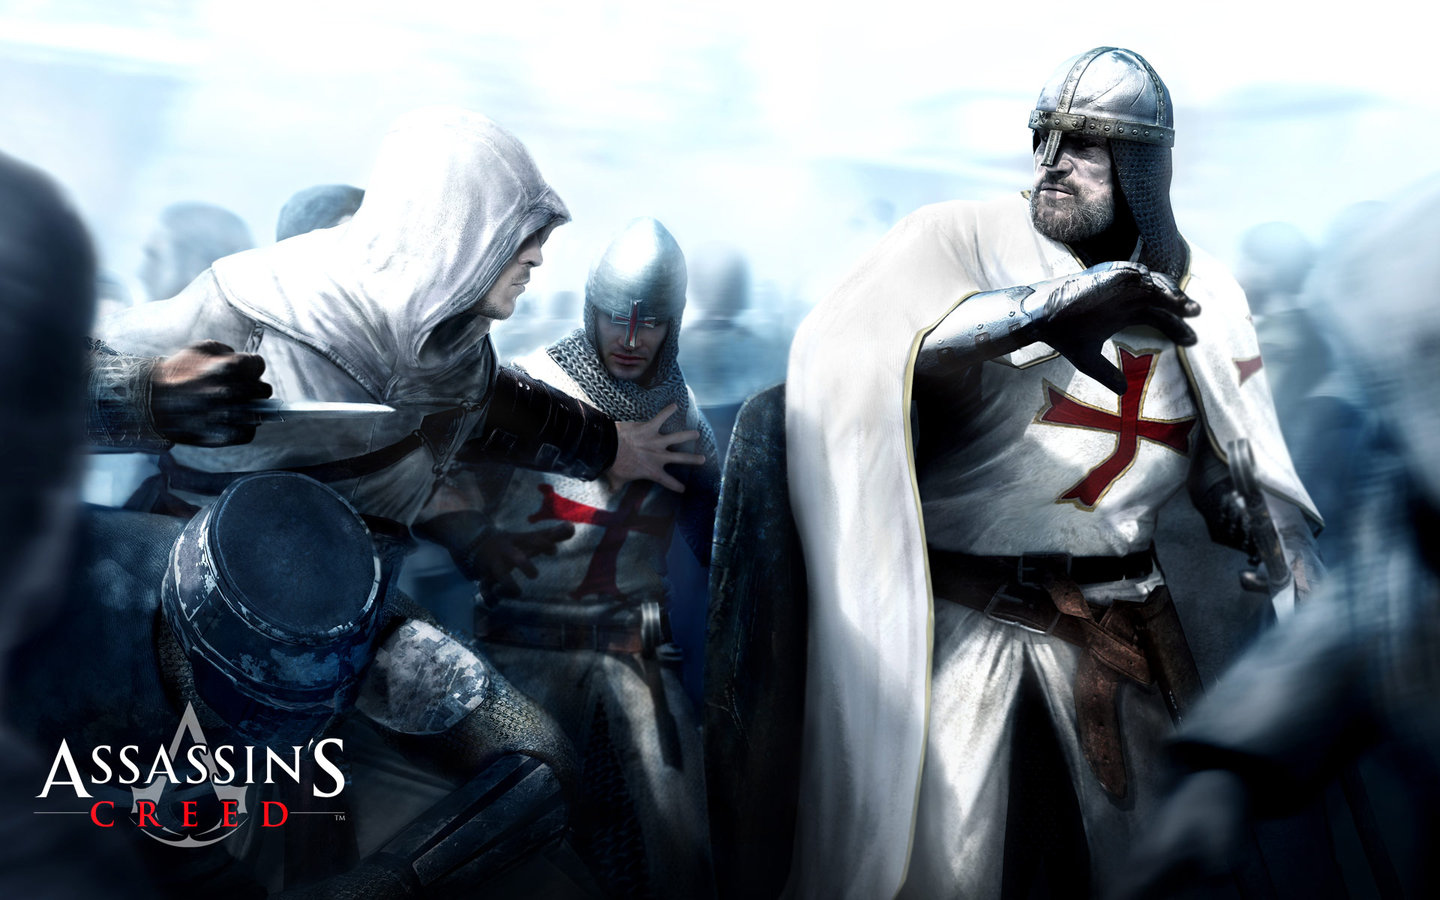 Assassin's Creed - PC Wallpaper